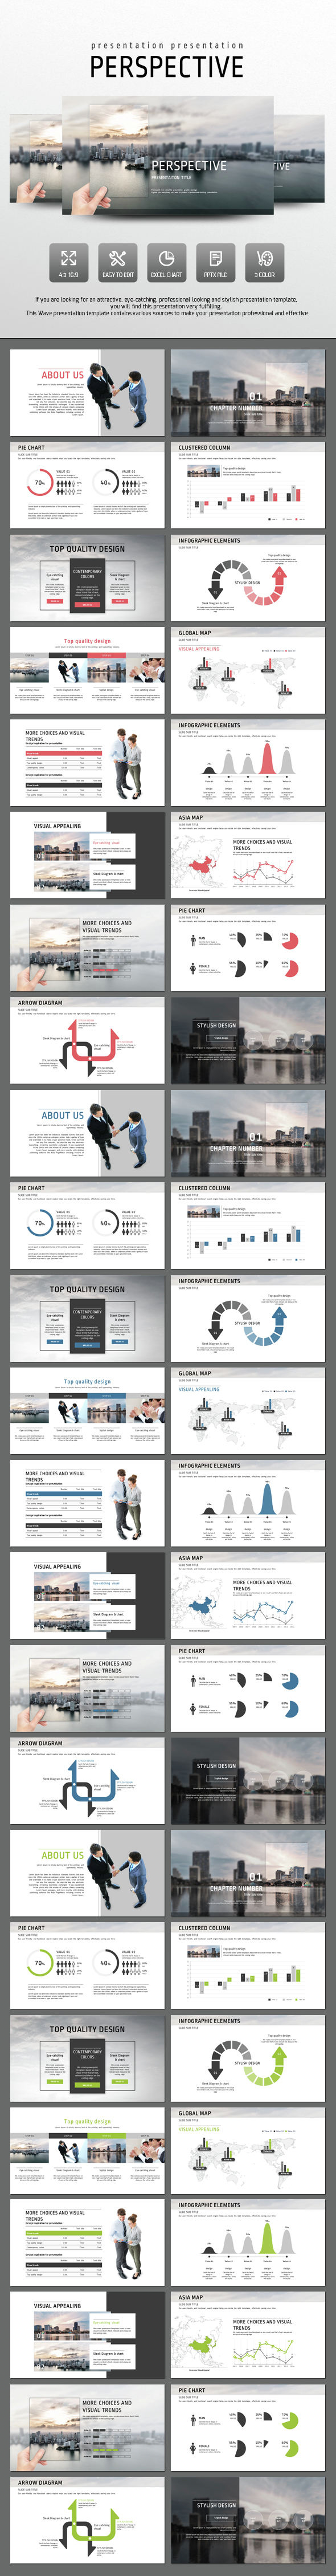 Perspective - PowerPoint Templates Presentation Templates